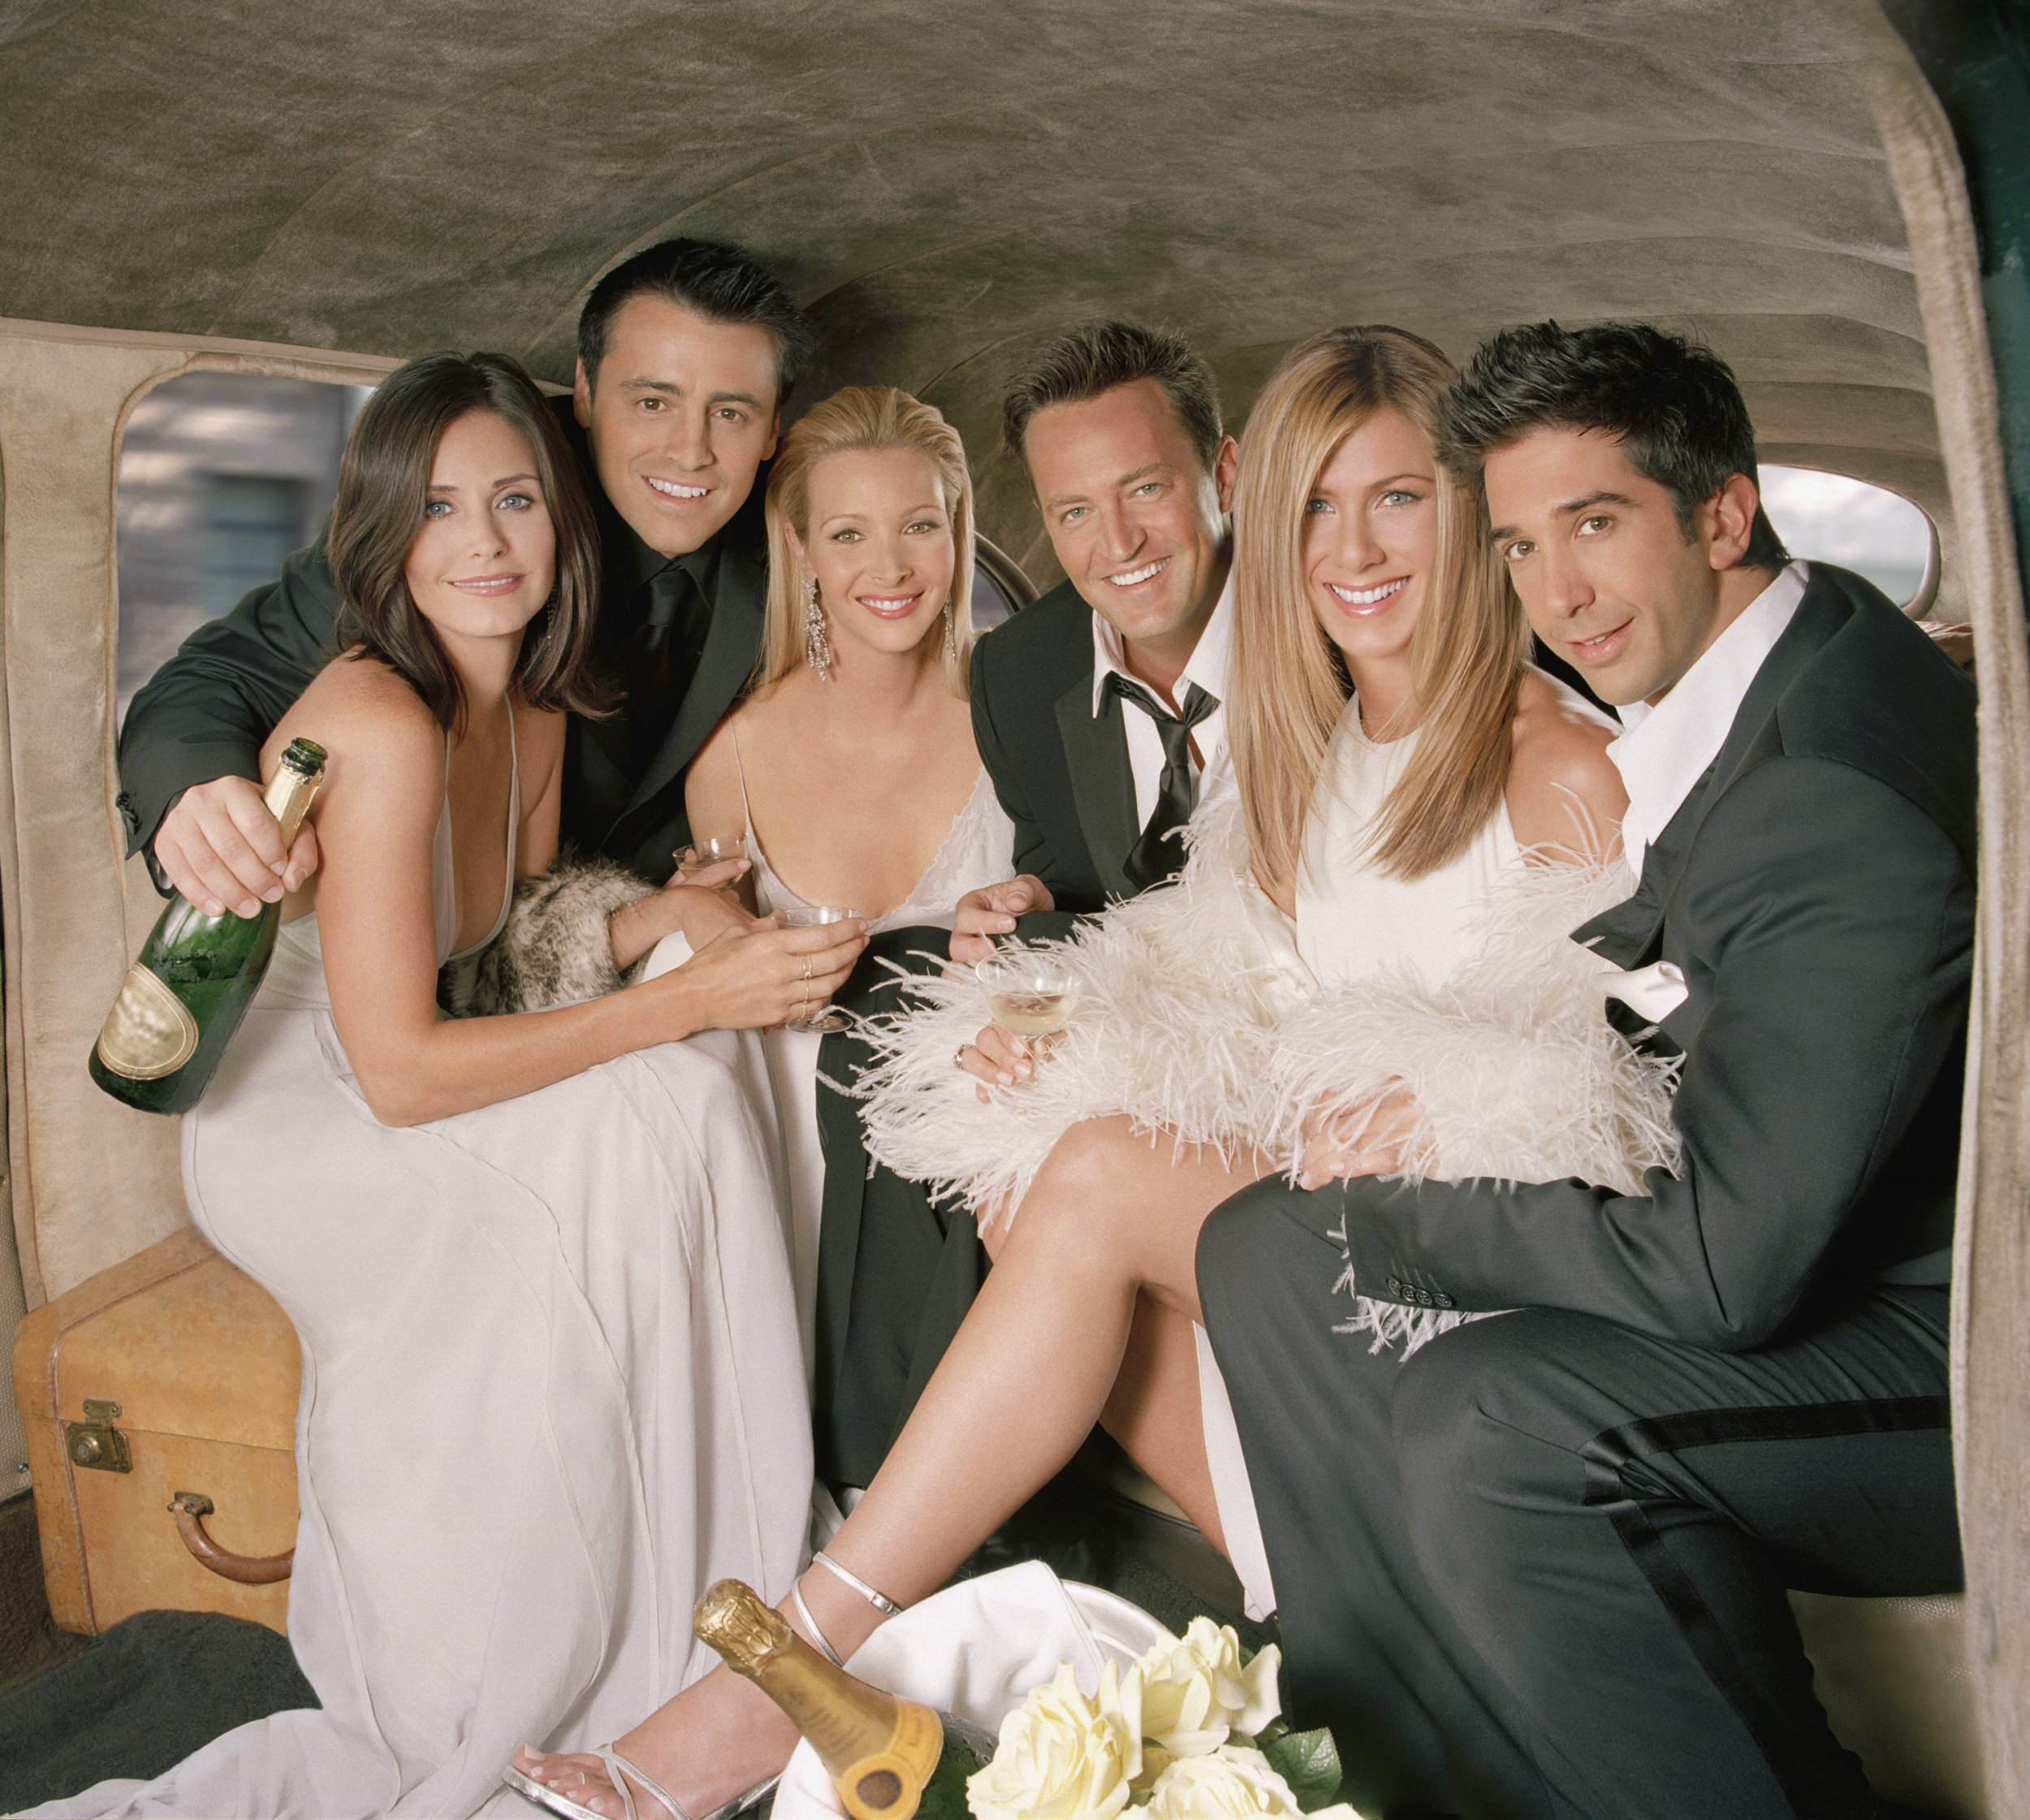 Friends cast are still getting paid $20 million a year thanks to re-runs and we're not jealous at all